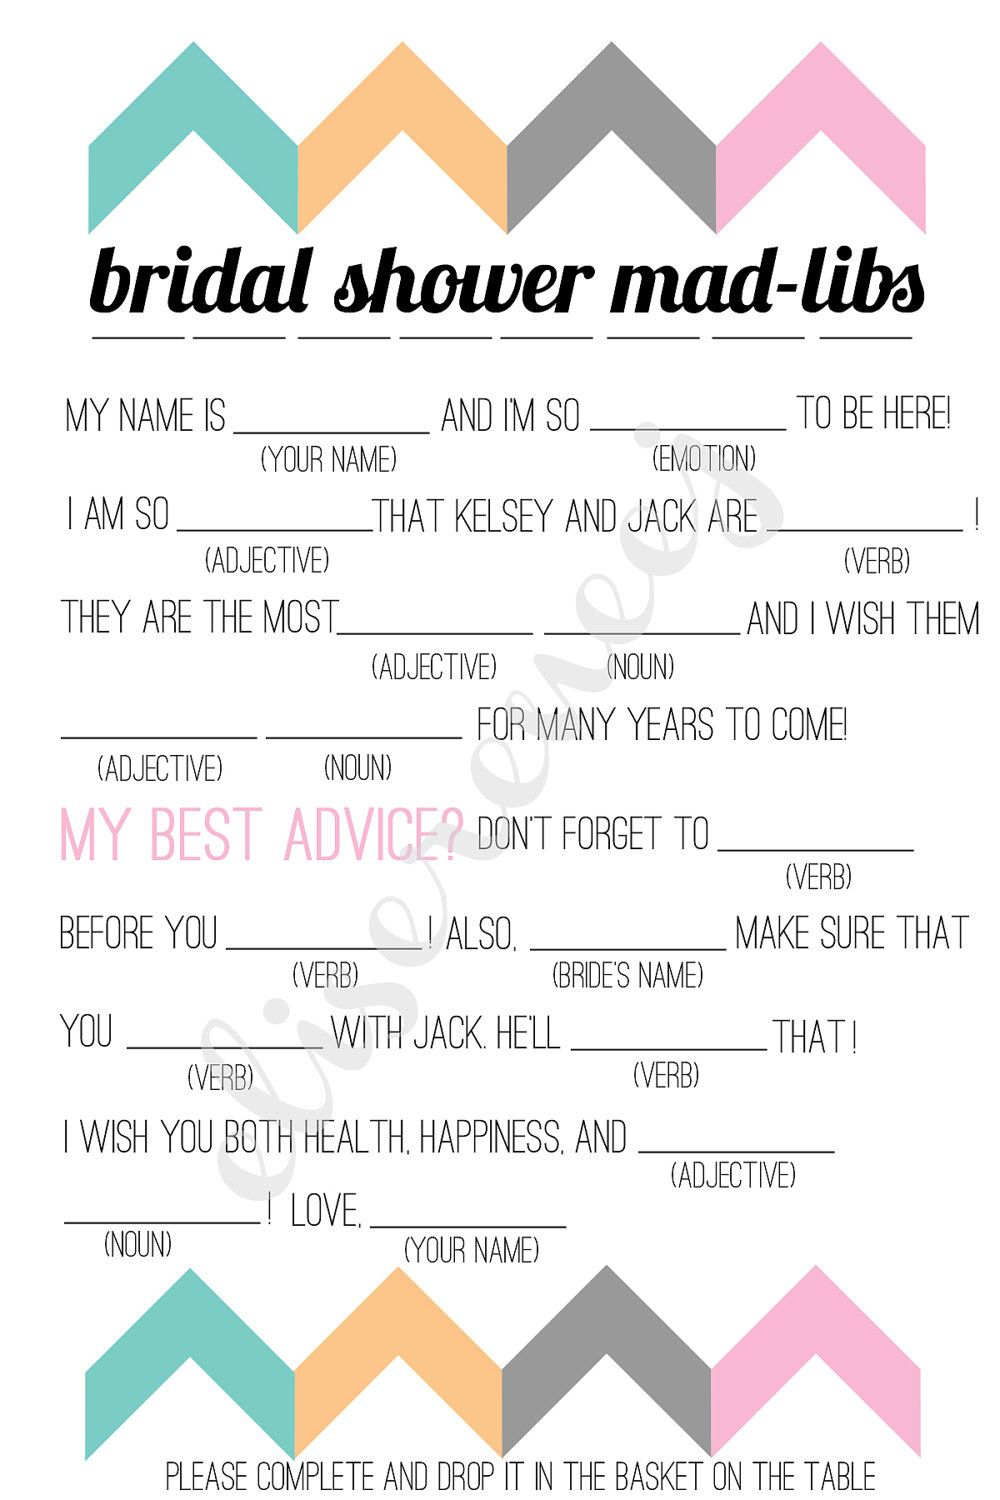 graphic about Wedding Mad Libs Printable known as free of charge bachelorette occasion nuts libs Printable Bridal Shower